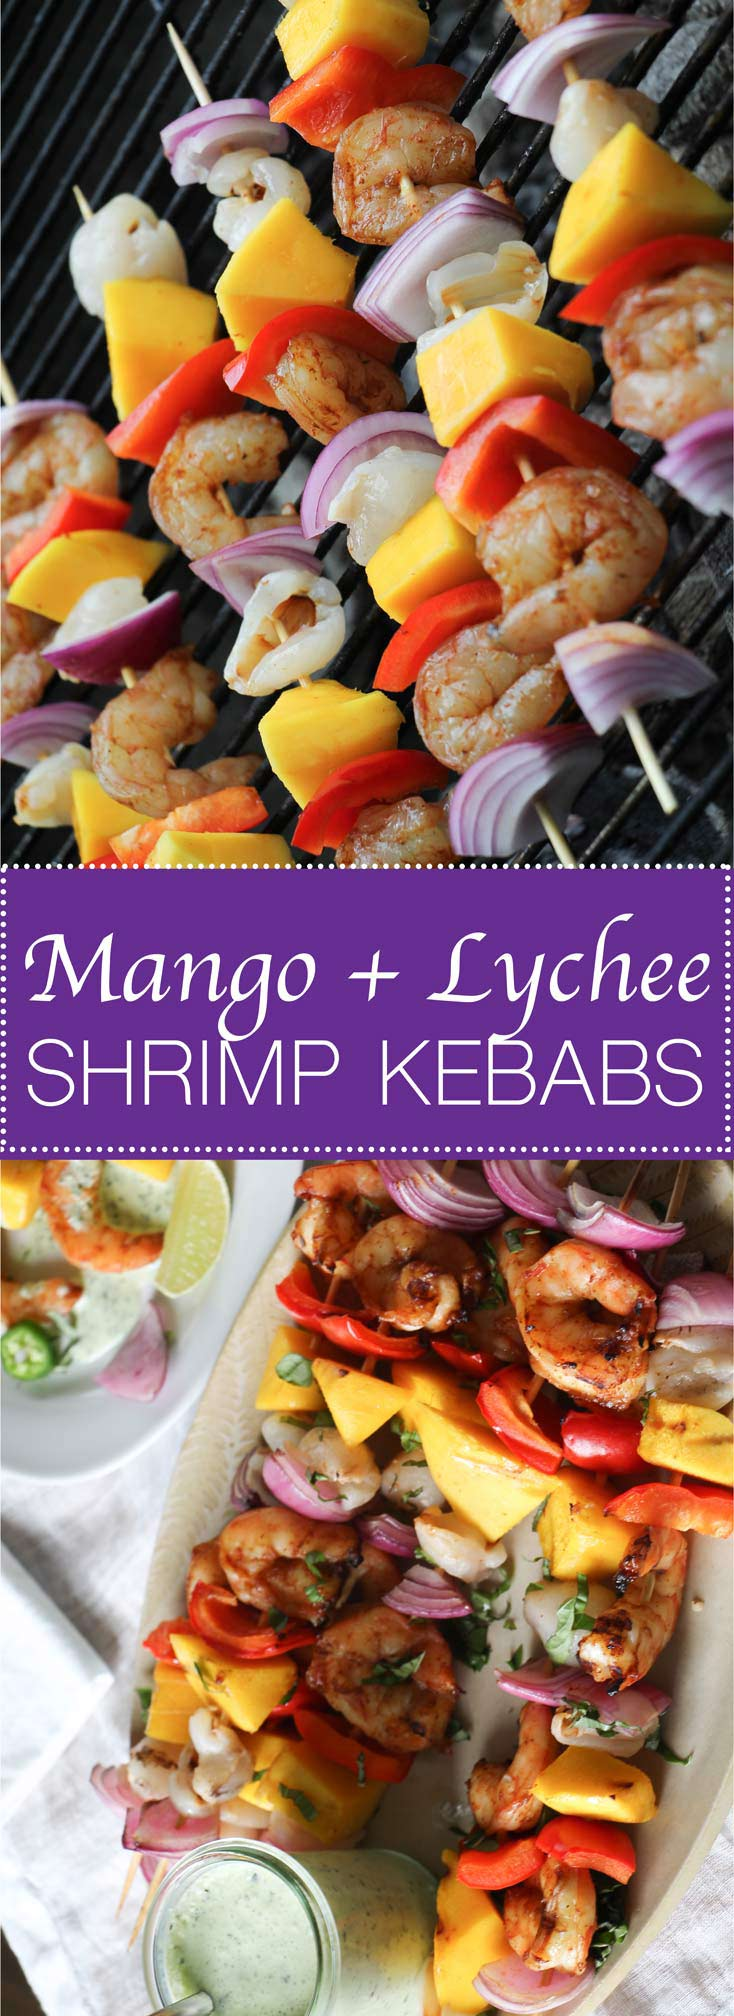 Mango & Lychee Shrimp Kebabs, sizzling off the grill, served with green goddess dip.  Big, juicy, tropical flavors!